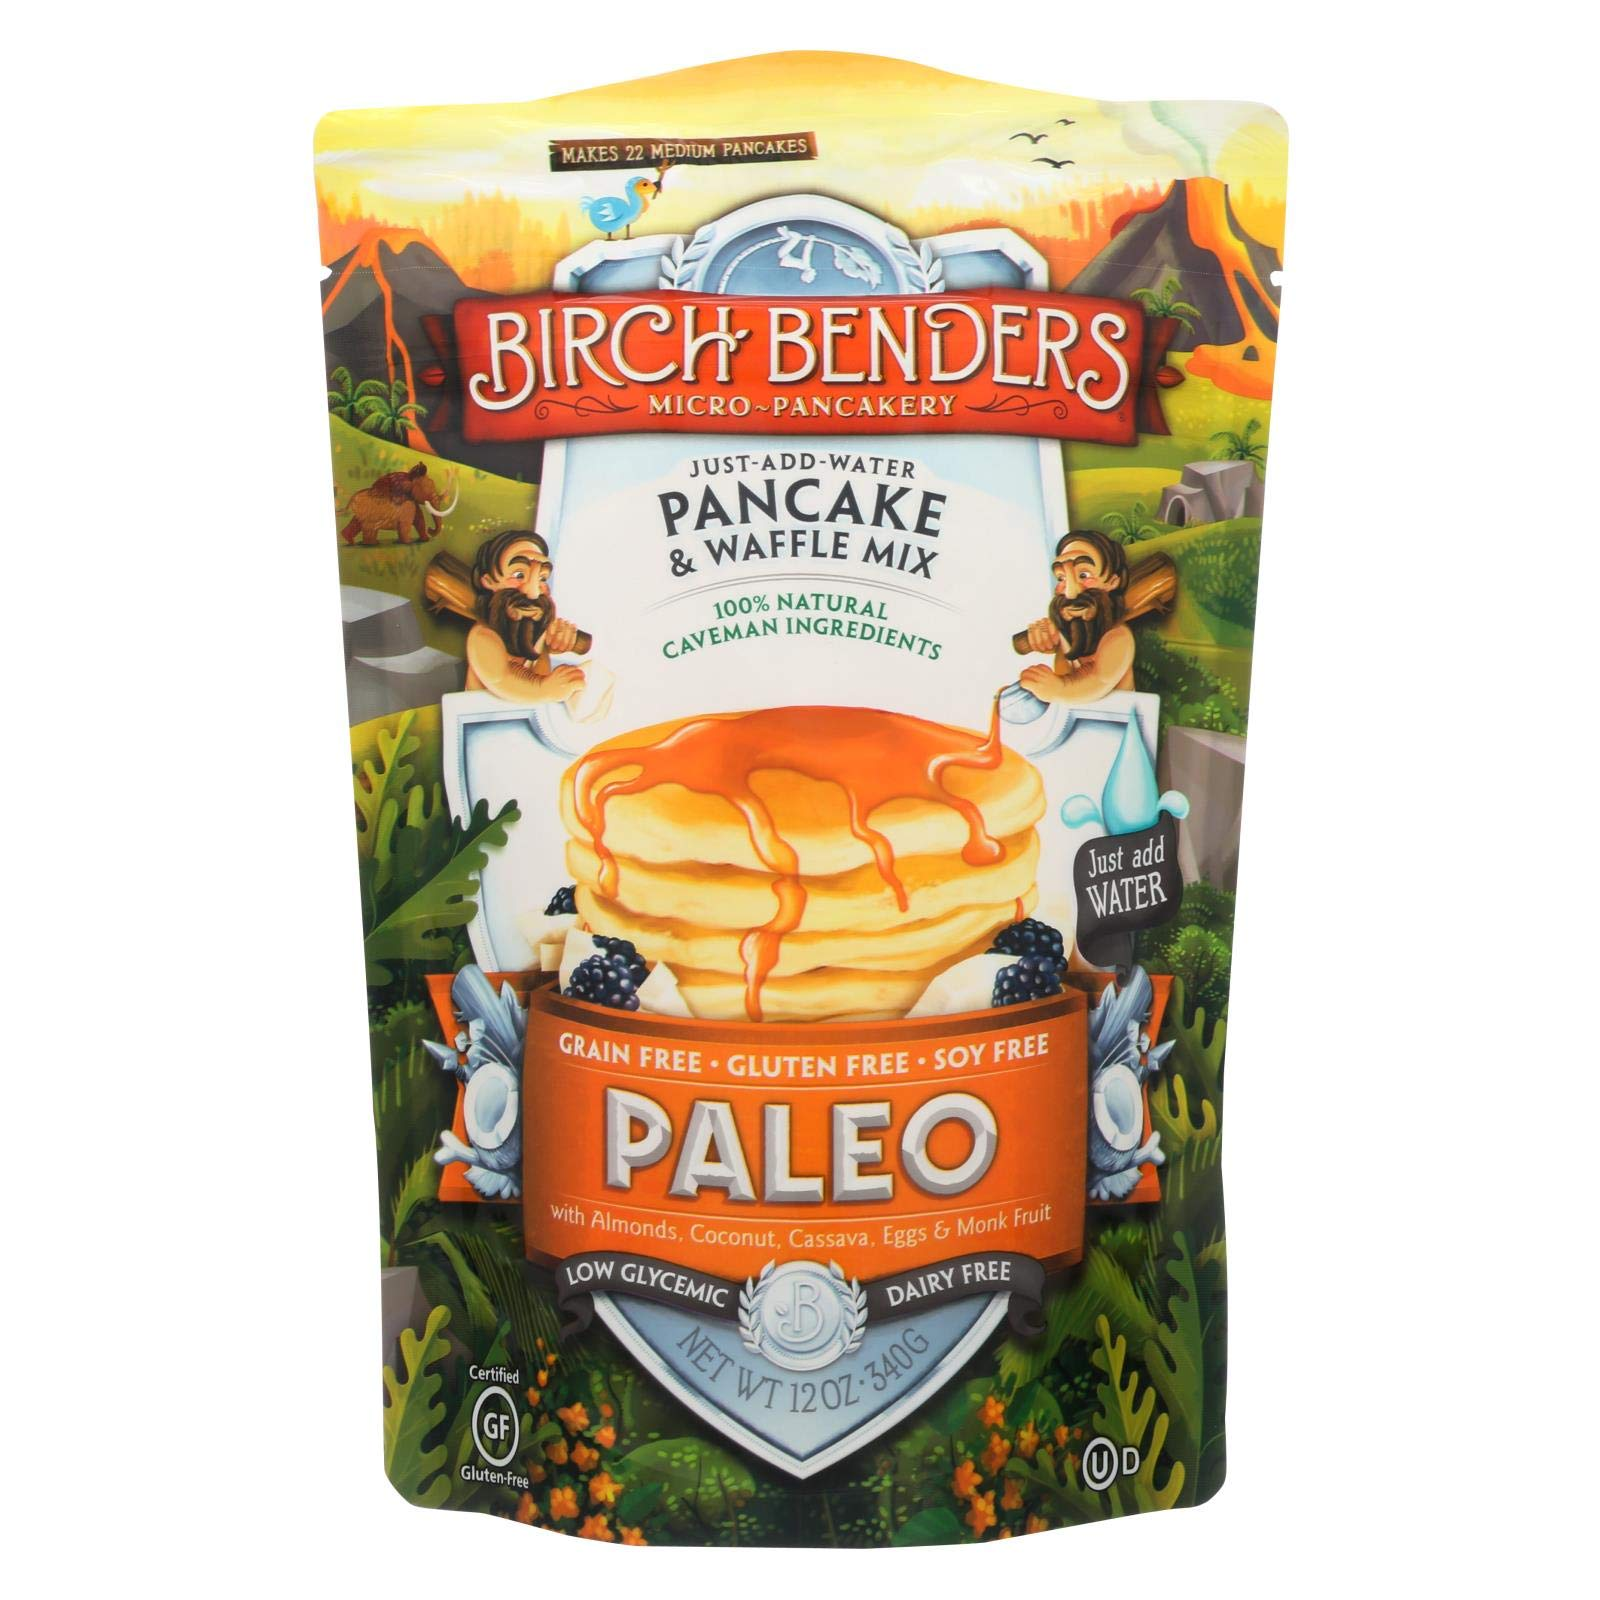 Birch Benders - Pancake And Waffle Mix - Paleo - Case Of 6 - 12 Oz by Cantu